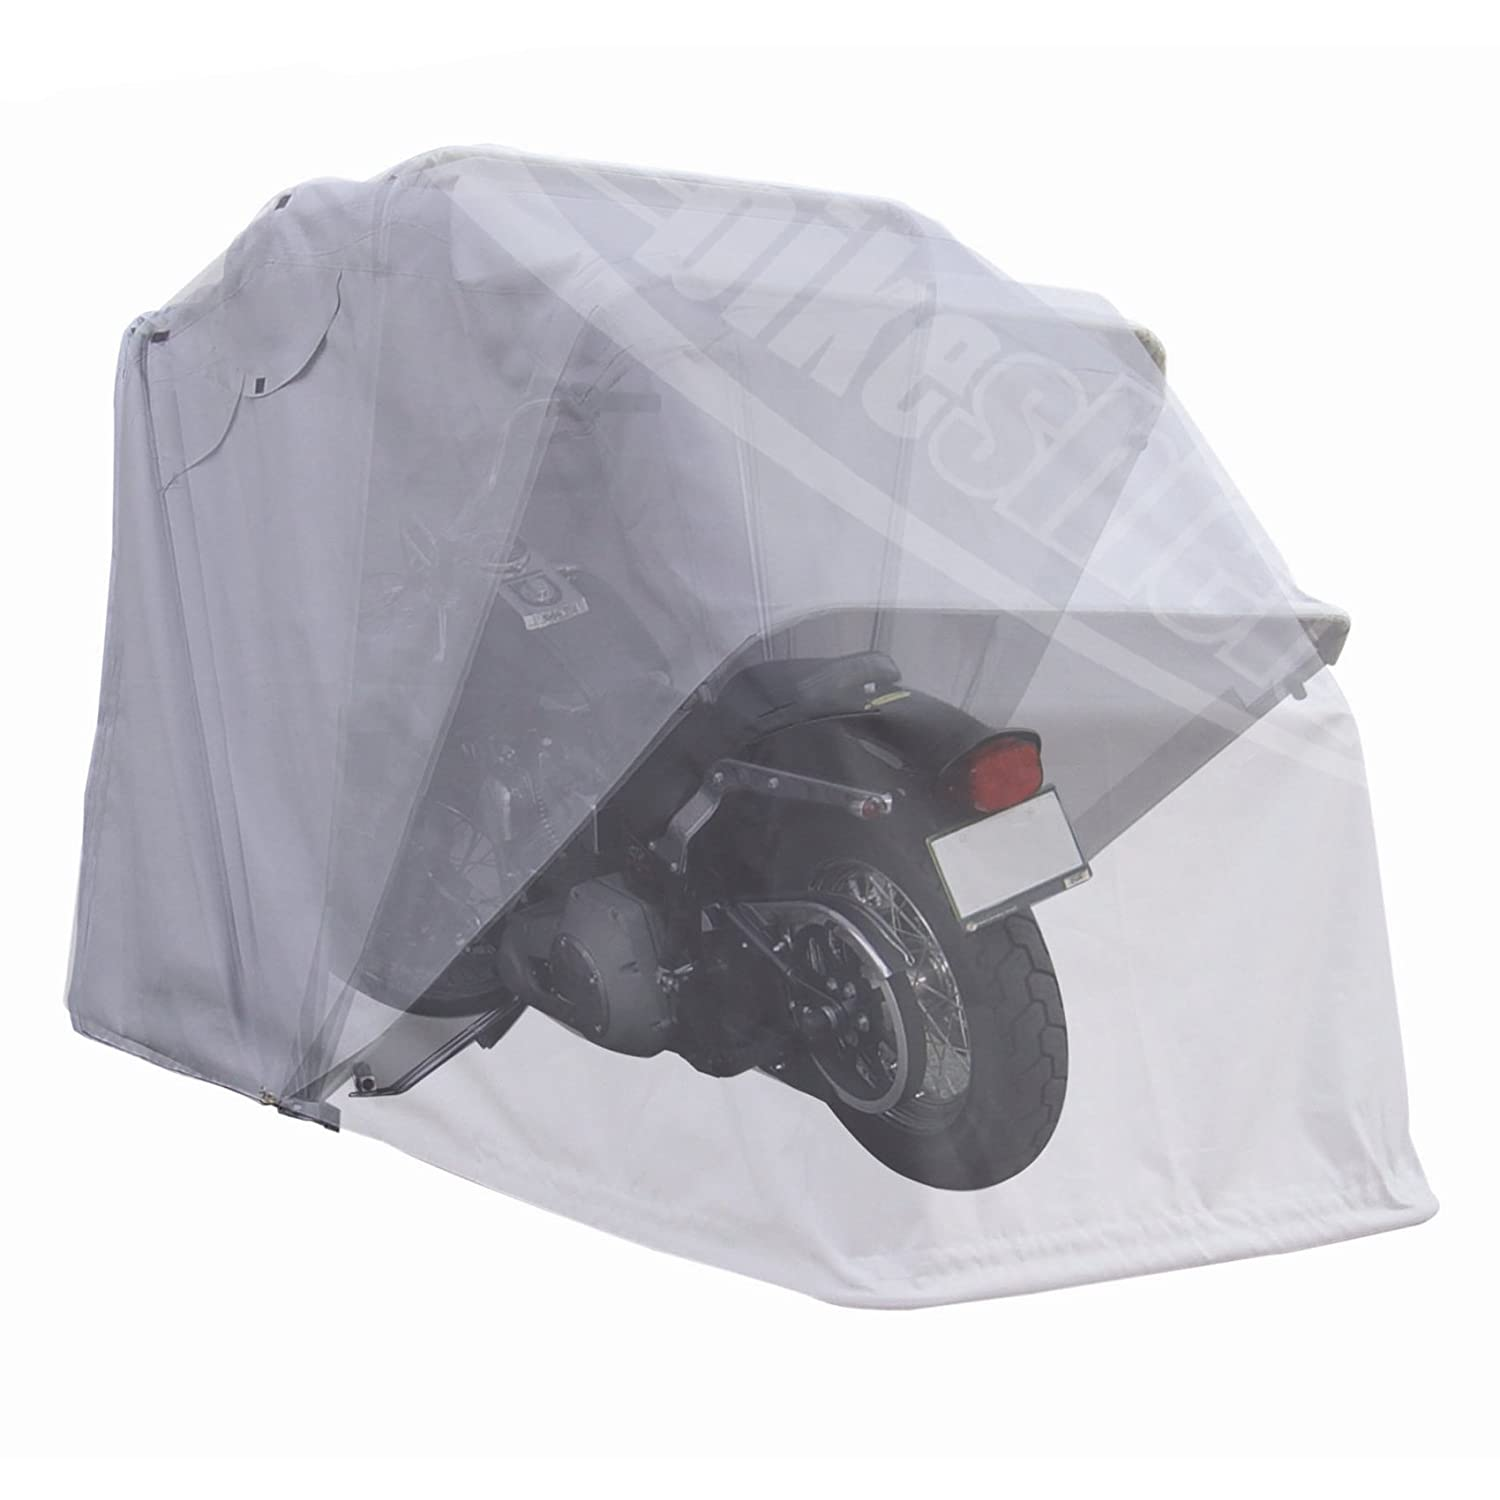 Amazon.com The Bike Shield Tourer (Large) Motorcycle Shelter / Storage / Cover / Tent / Garage Automotive  sc 1 st  Amazon.com & Amazon.com: The Bike Shield Tourer (Large) Motorcycle Shelter ...